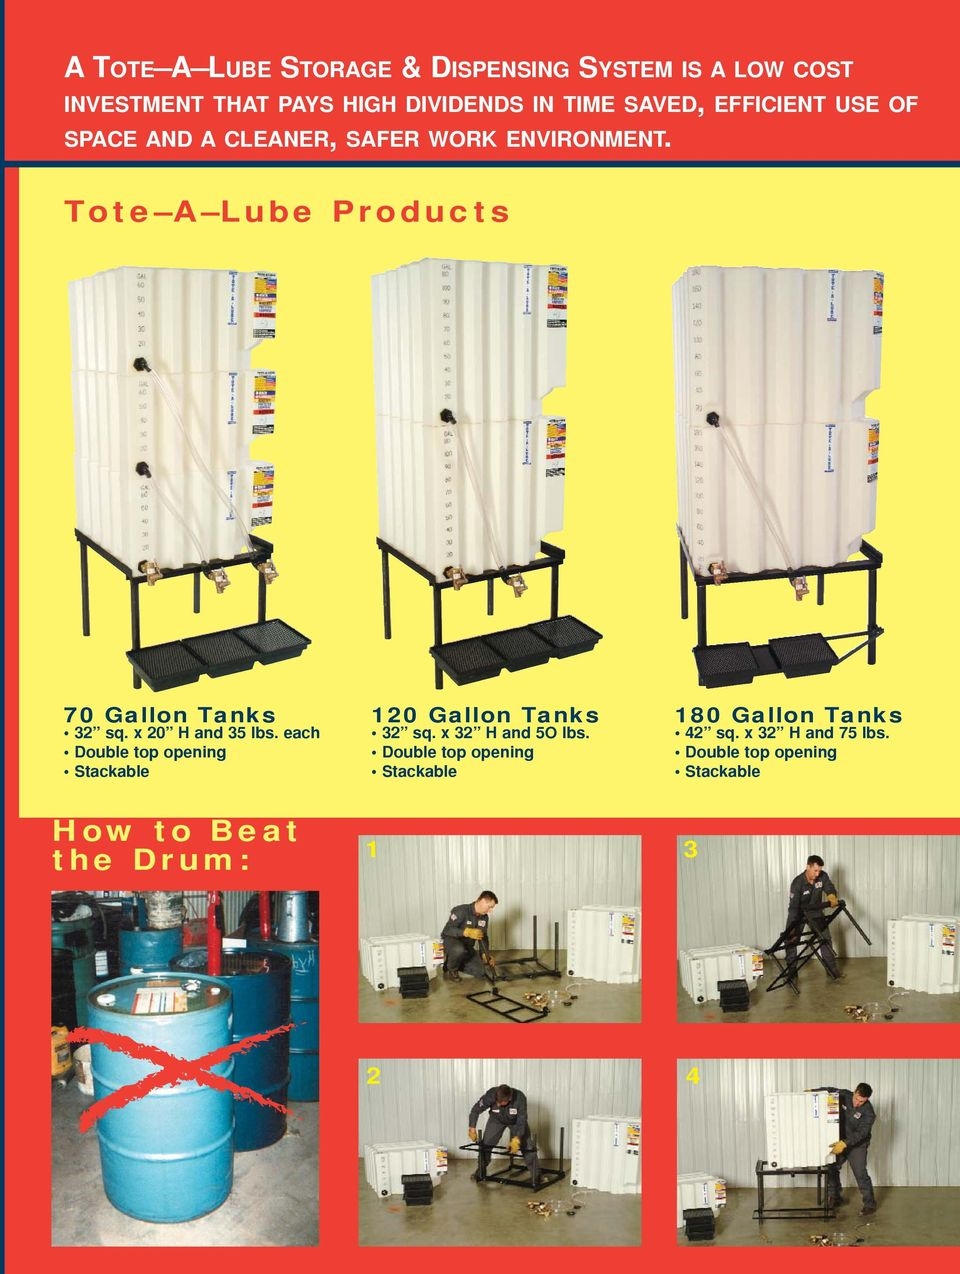 Tote A Lube Products 70 Gallon Tanks 32 sq. x 20 H and 35 lbs.